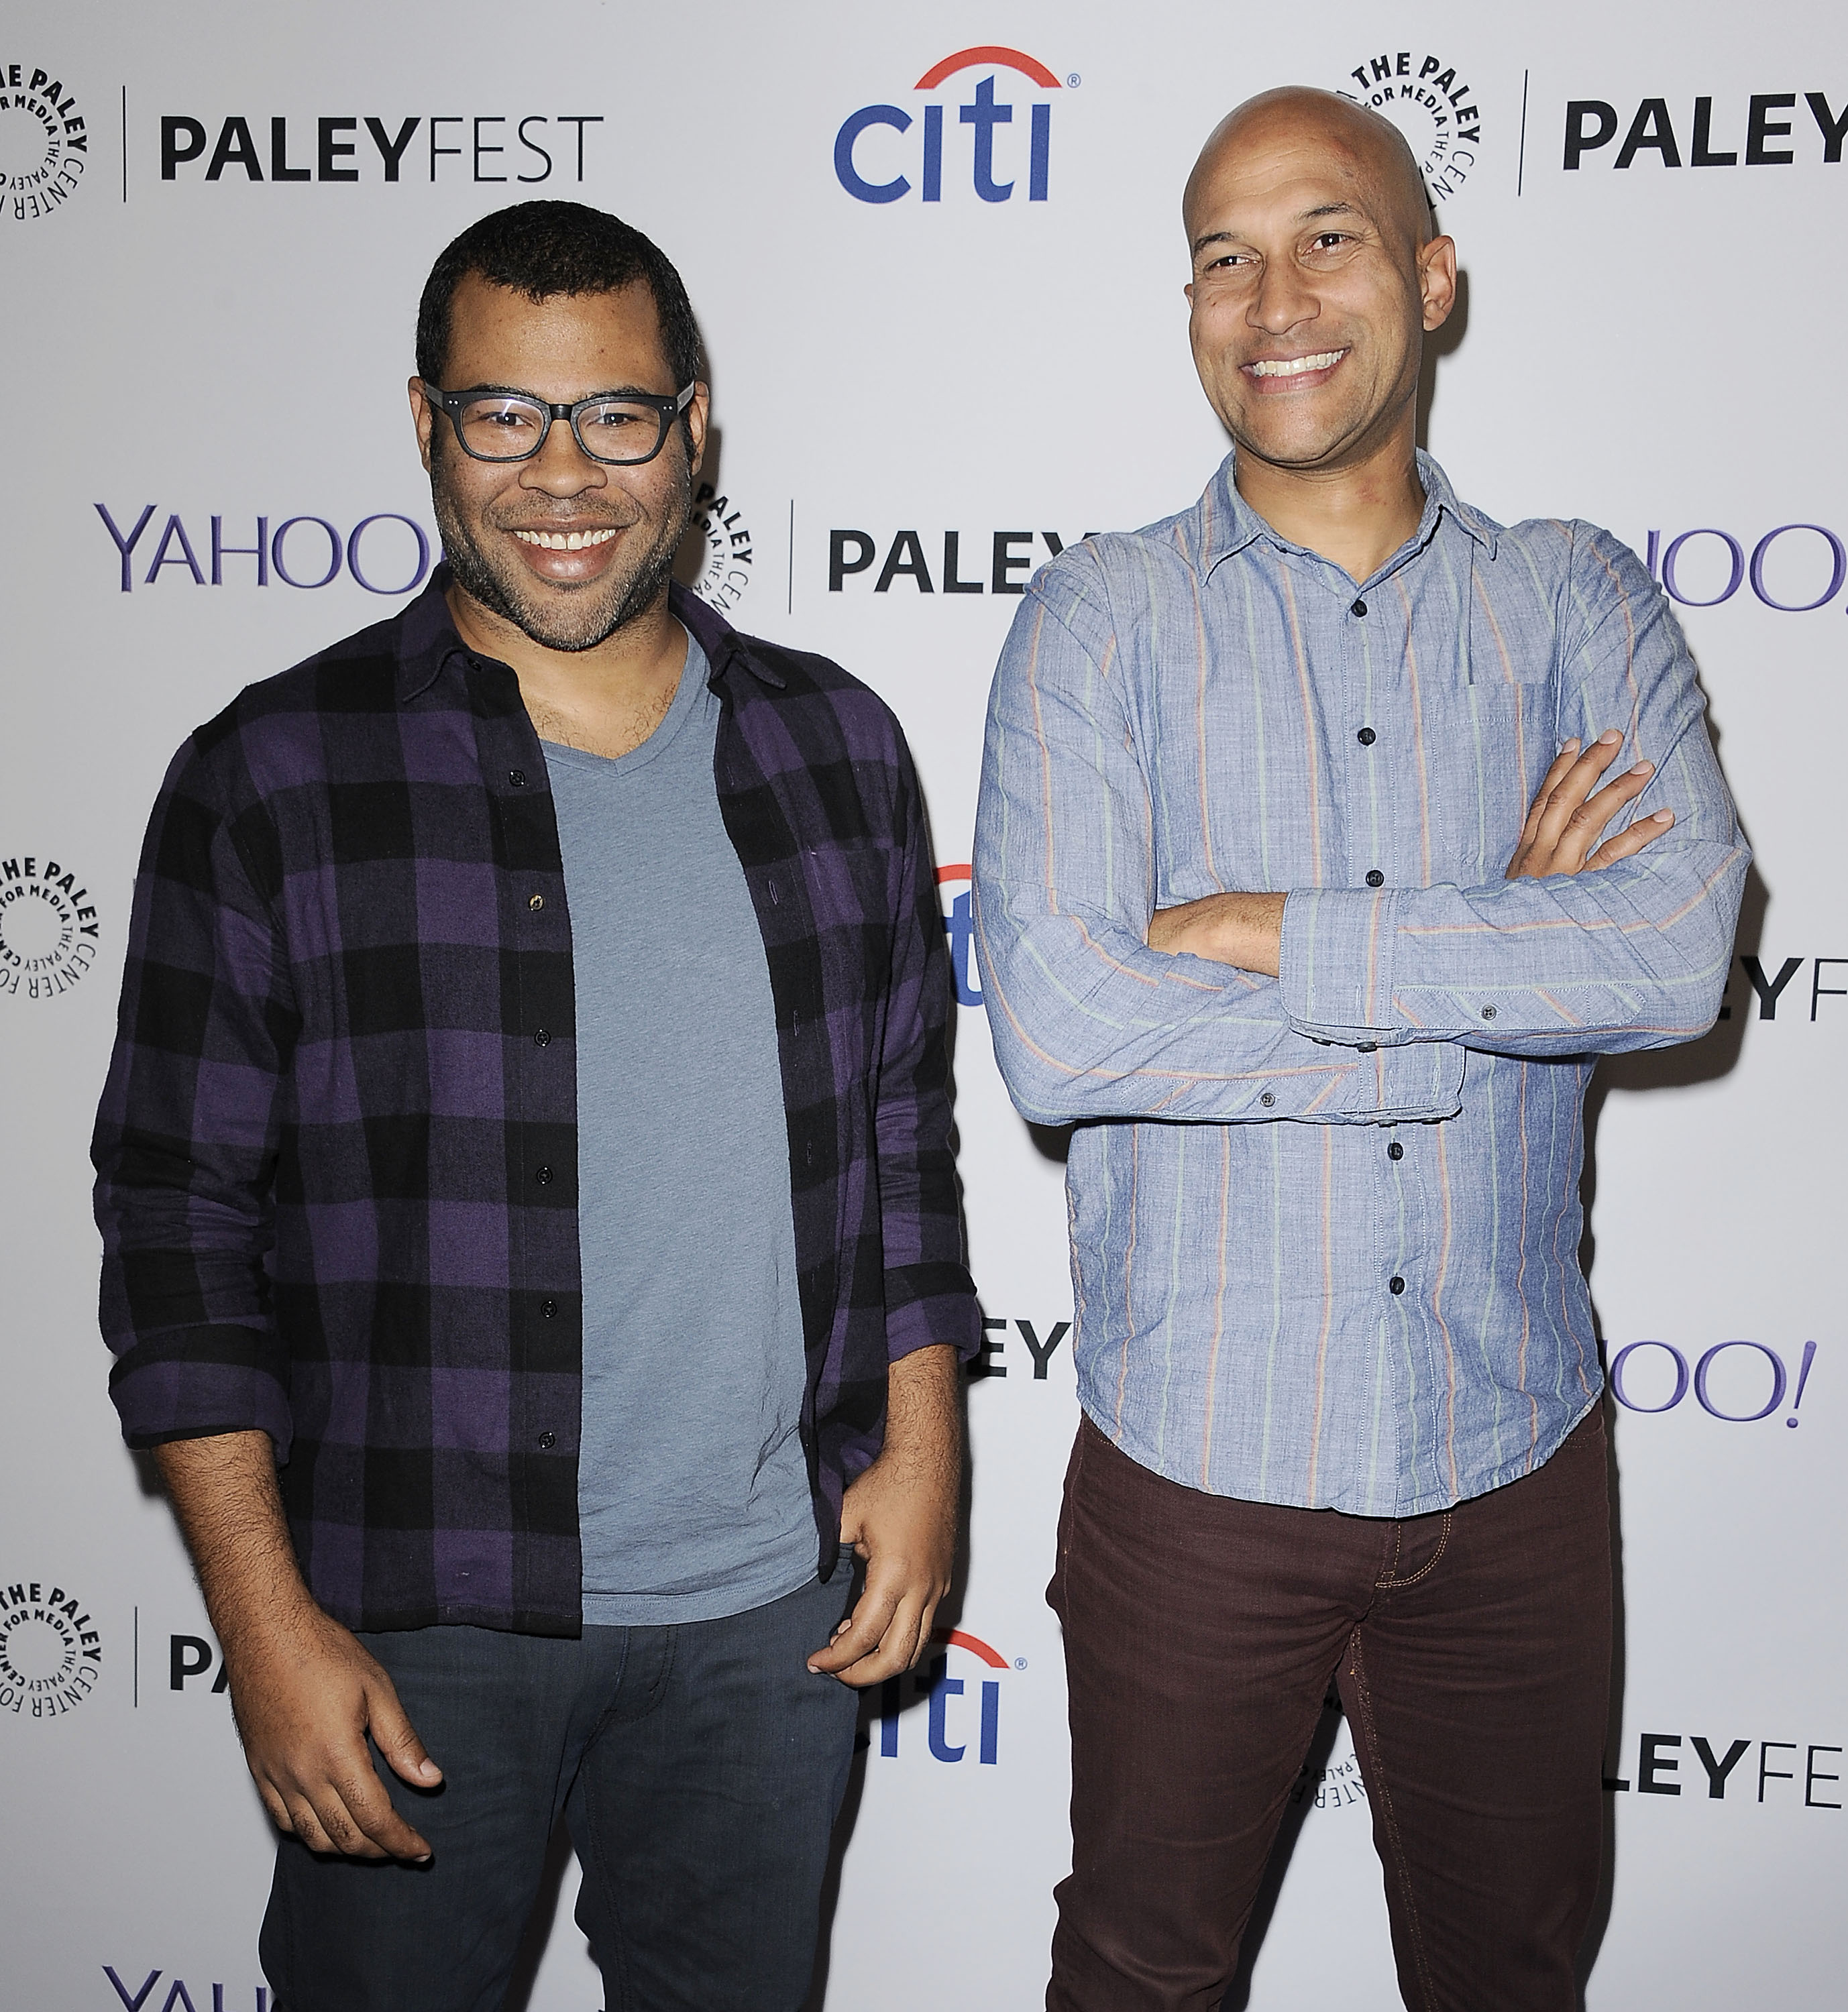 Jordan Peele and Keegan-Michael Key attend a salute to Comedy Central at the 32nd annual PaleyFest at Dolby Theatre on March 7, 2015 in Hollywood, California.